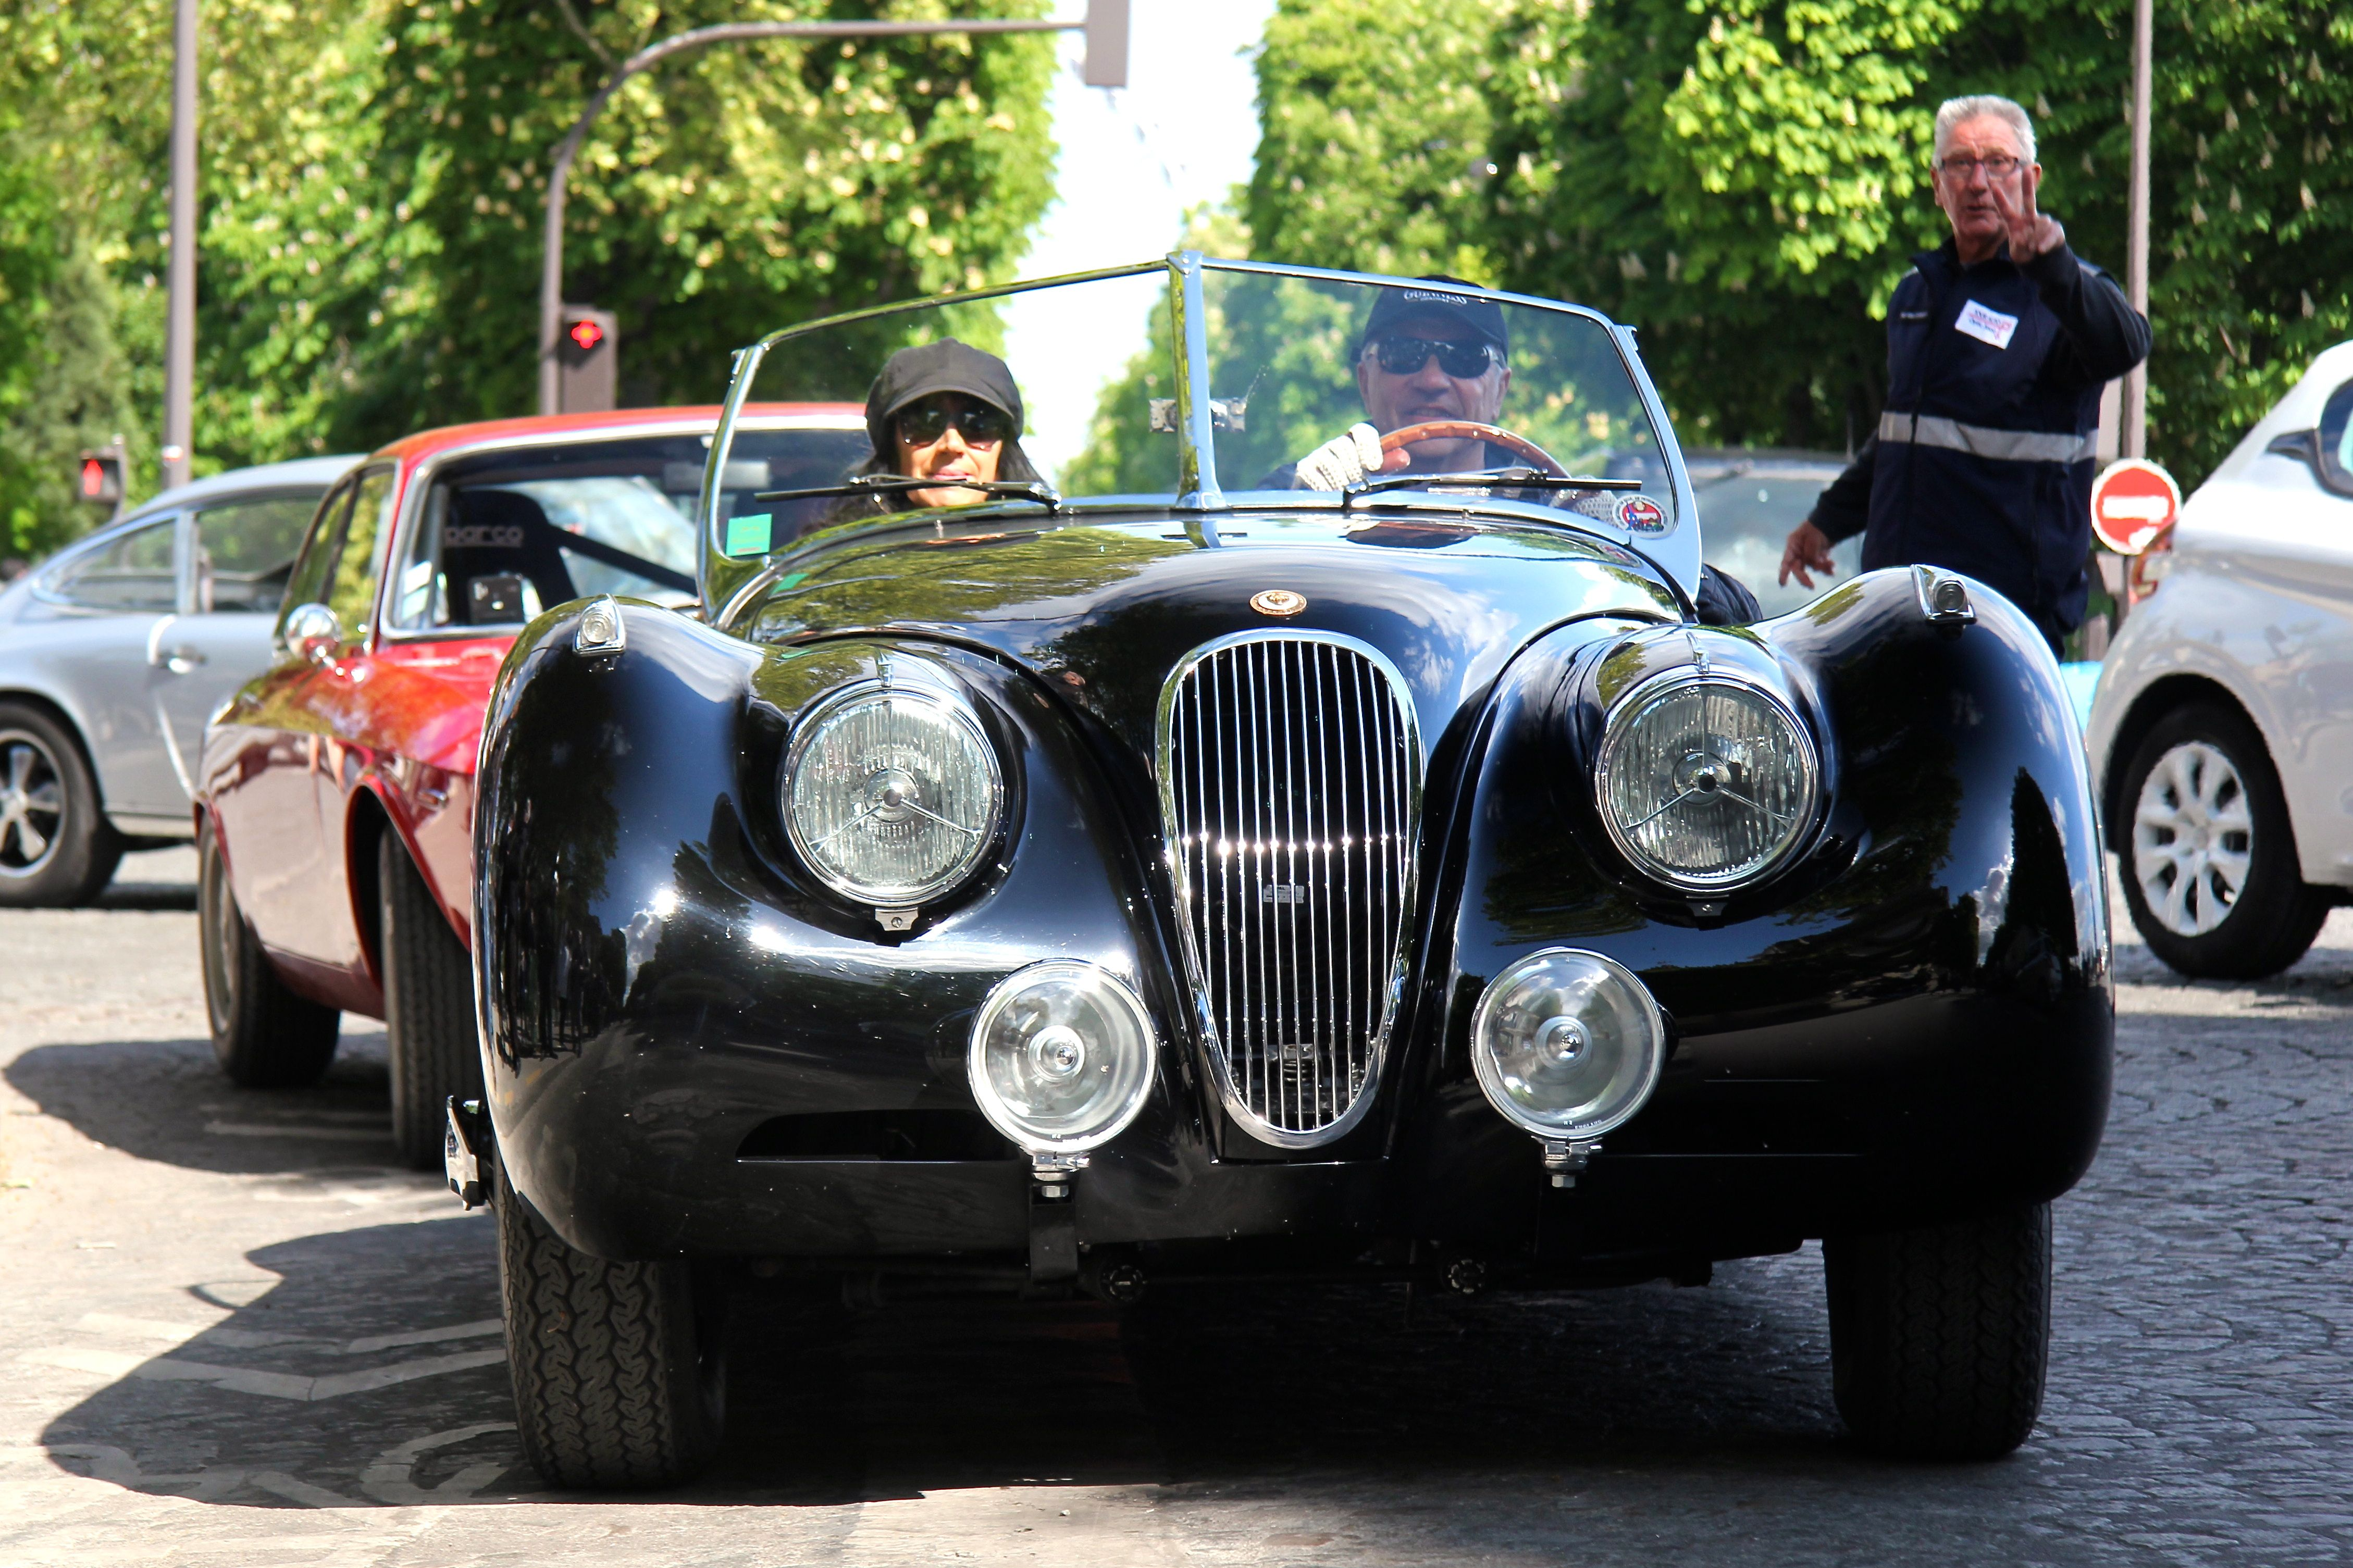 Jaguar classic - Paris - Tour Auto 2017 - photo Ludo Ferrari